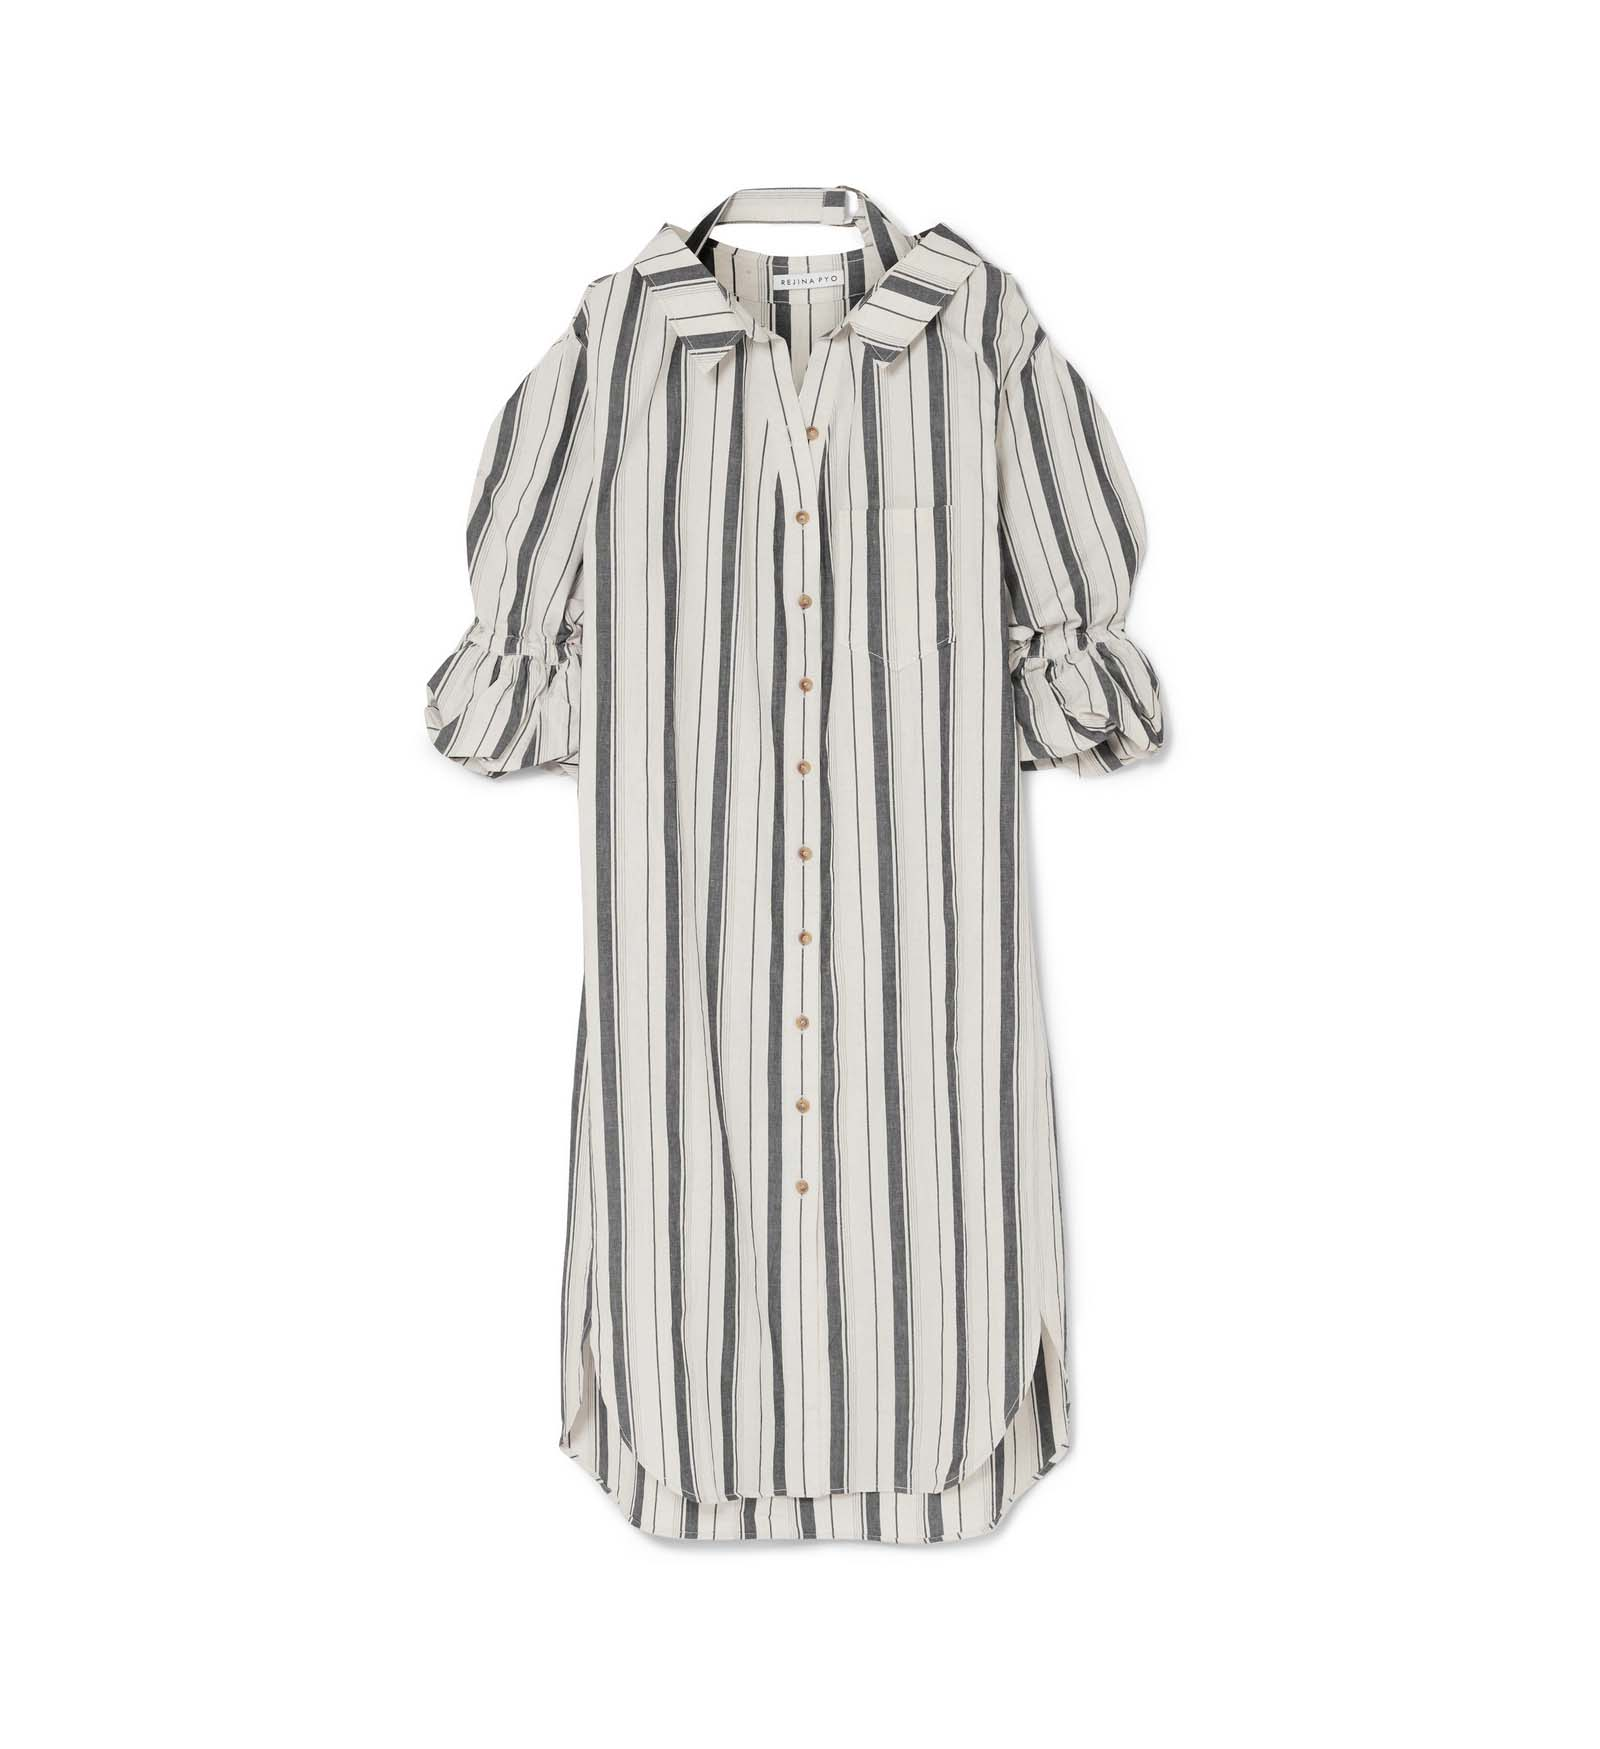 Trend_Shirtdress_NewsCred_1160x1740_01.jpg